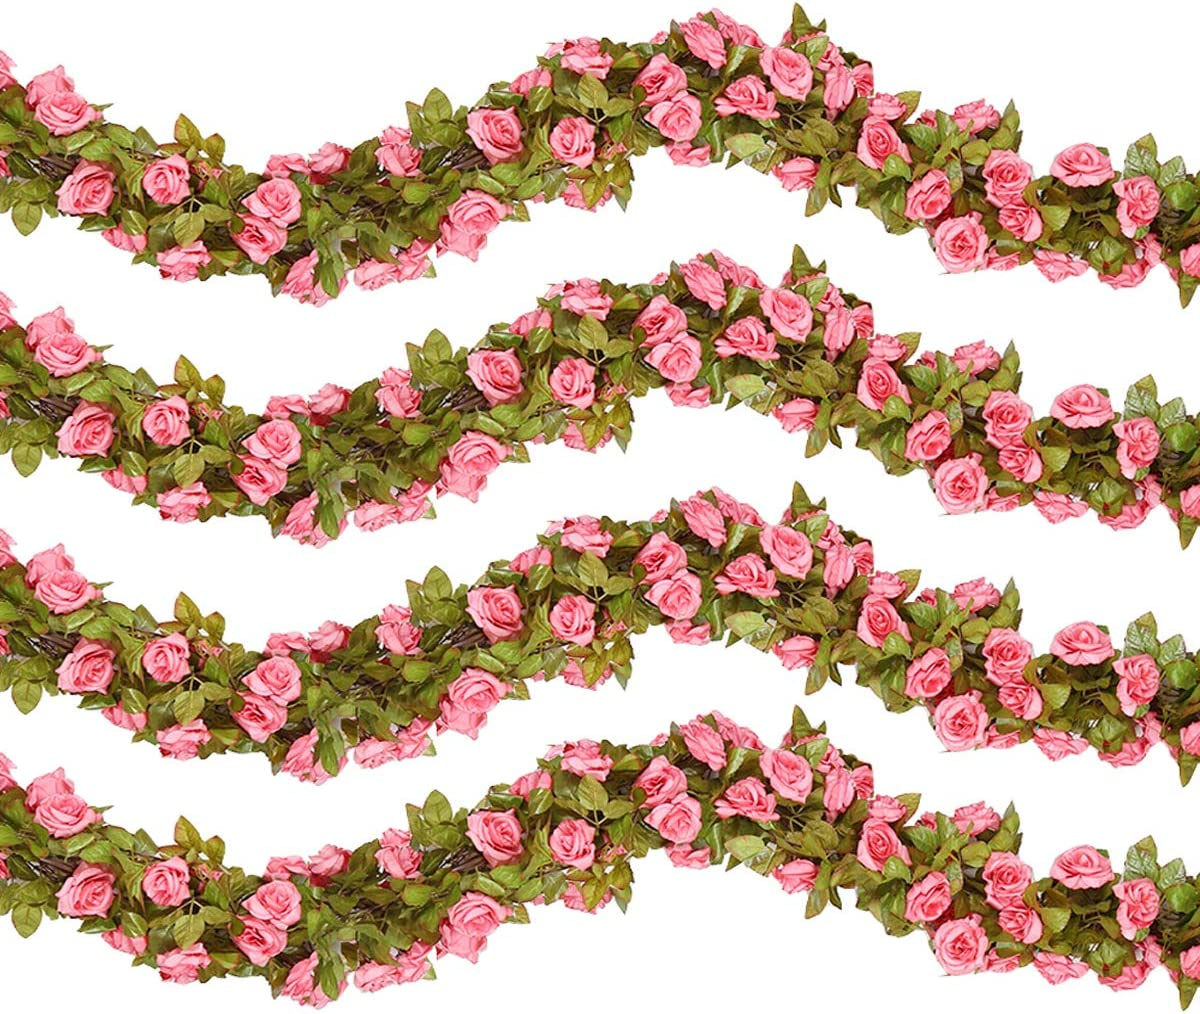 HEBE 4 Pack (29.8 FT) Artificial Rose Vine Garland Silk Fake Rose Flowers Garland Artificial Hanging Flower Plants for Home Hotel Office Wedding Party Arch Garden Decor, Pink